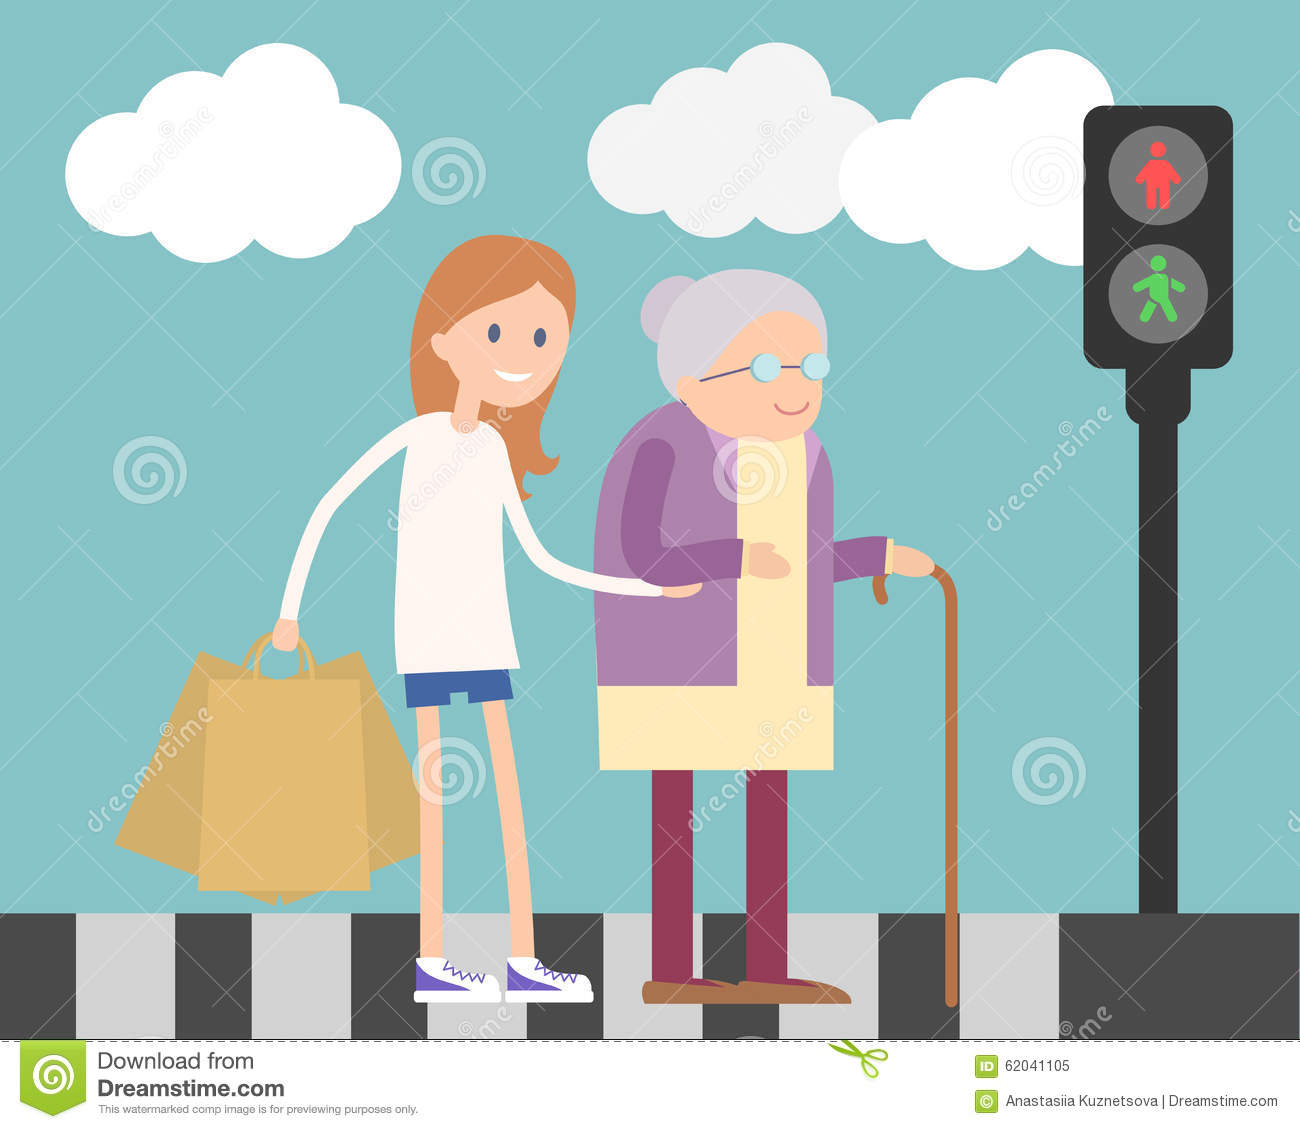 read a road map with Stock Illustration Girl Helping Old Woman To Cross Road Flat Illustration Kind Image62041105 on Stock Photo Just Go Ahead Concept Chalkboard Image43832302 also Road Trip Mexico Finding Coloured Lagoons Pink Flamingoes Yucatan as well LocationPhotoDirectLink G293916 D2425310 I51168940 Terminal 21 Bangkok as well Stock Illustration Girl Helping Old Woman To Cross Road Flat Illustration Kind Image62041105 as well Kaizen Blitz.